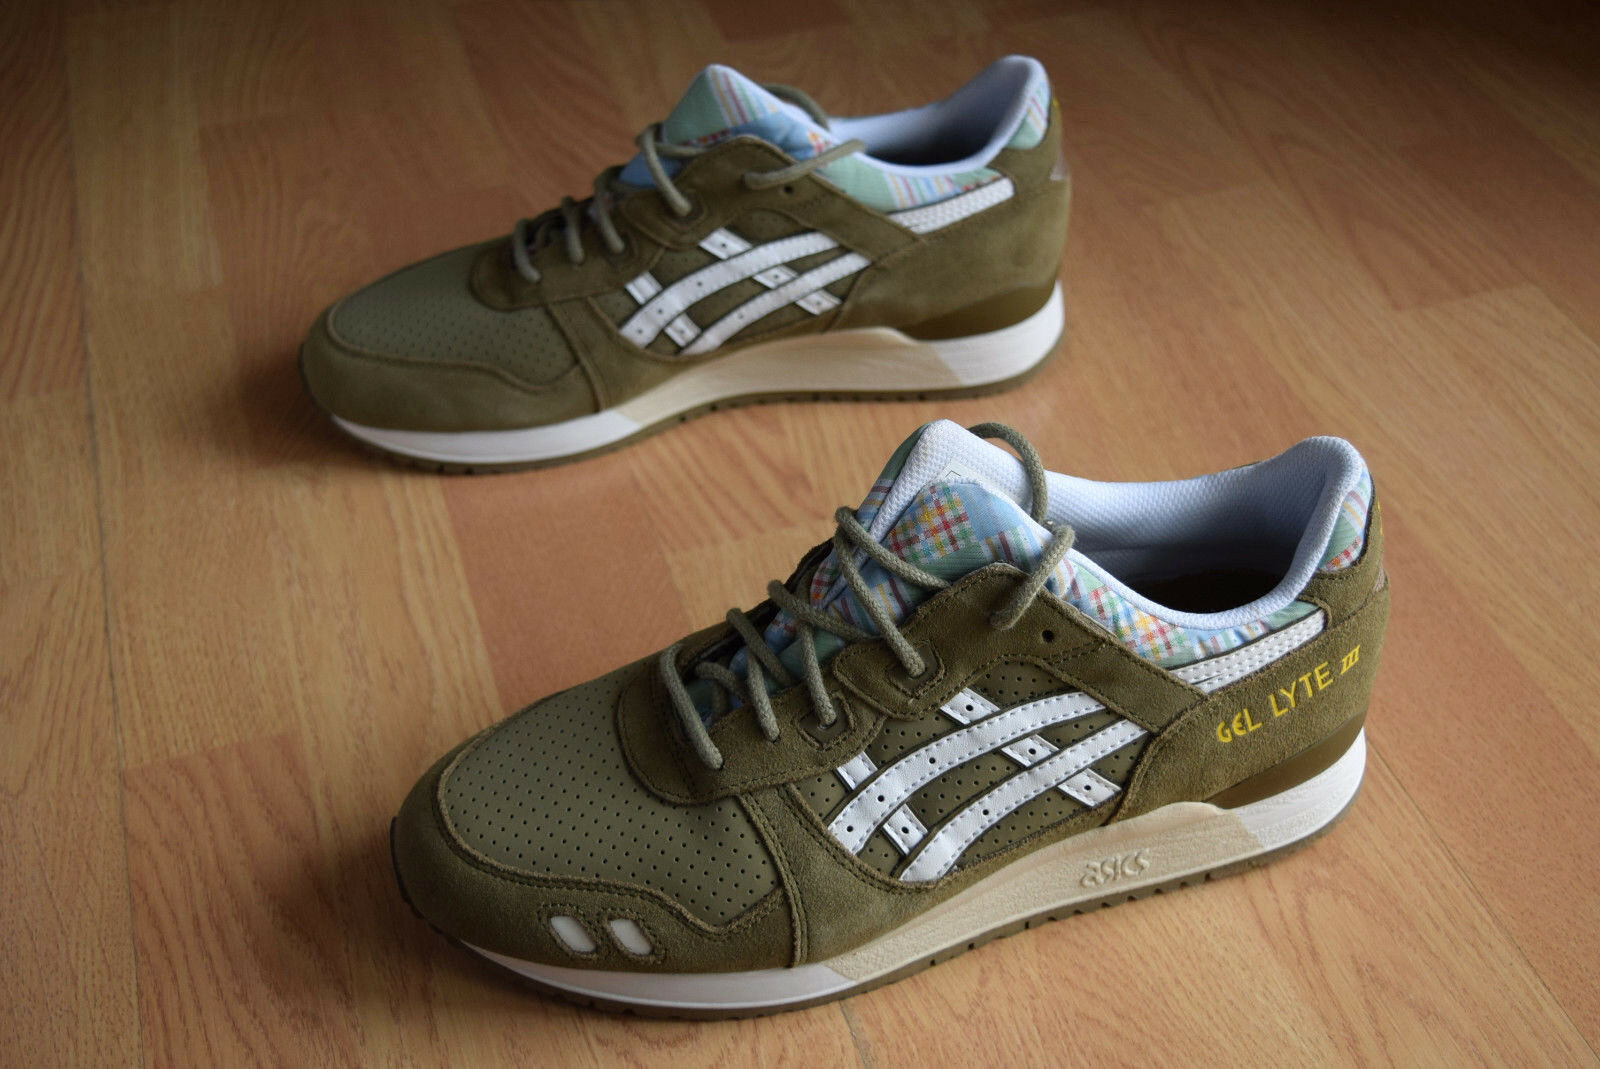 asics gel lyte III 40,5 41 43 43,5 44 H587L 8501 V sAgA gT II footpatrol IV pack New shoes for men and women, limited time discount